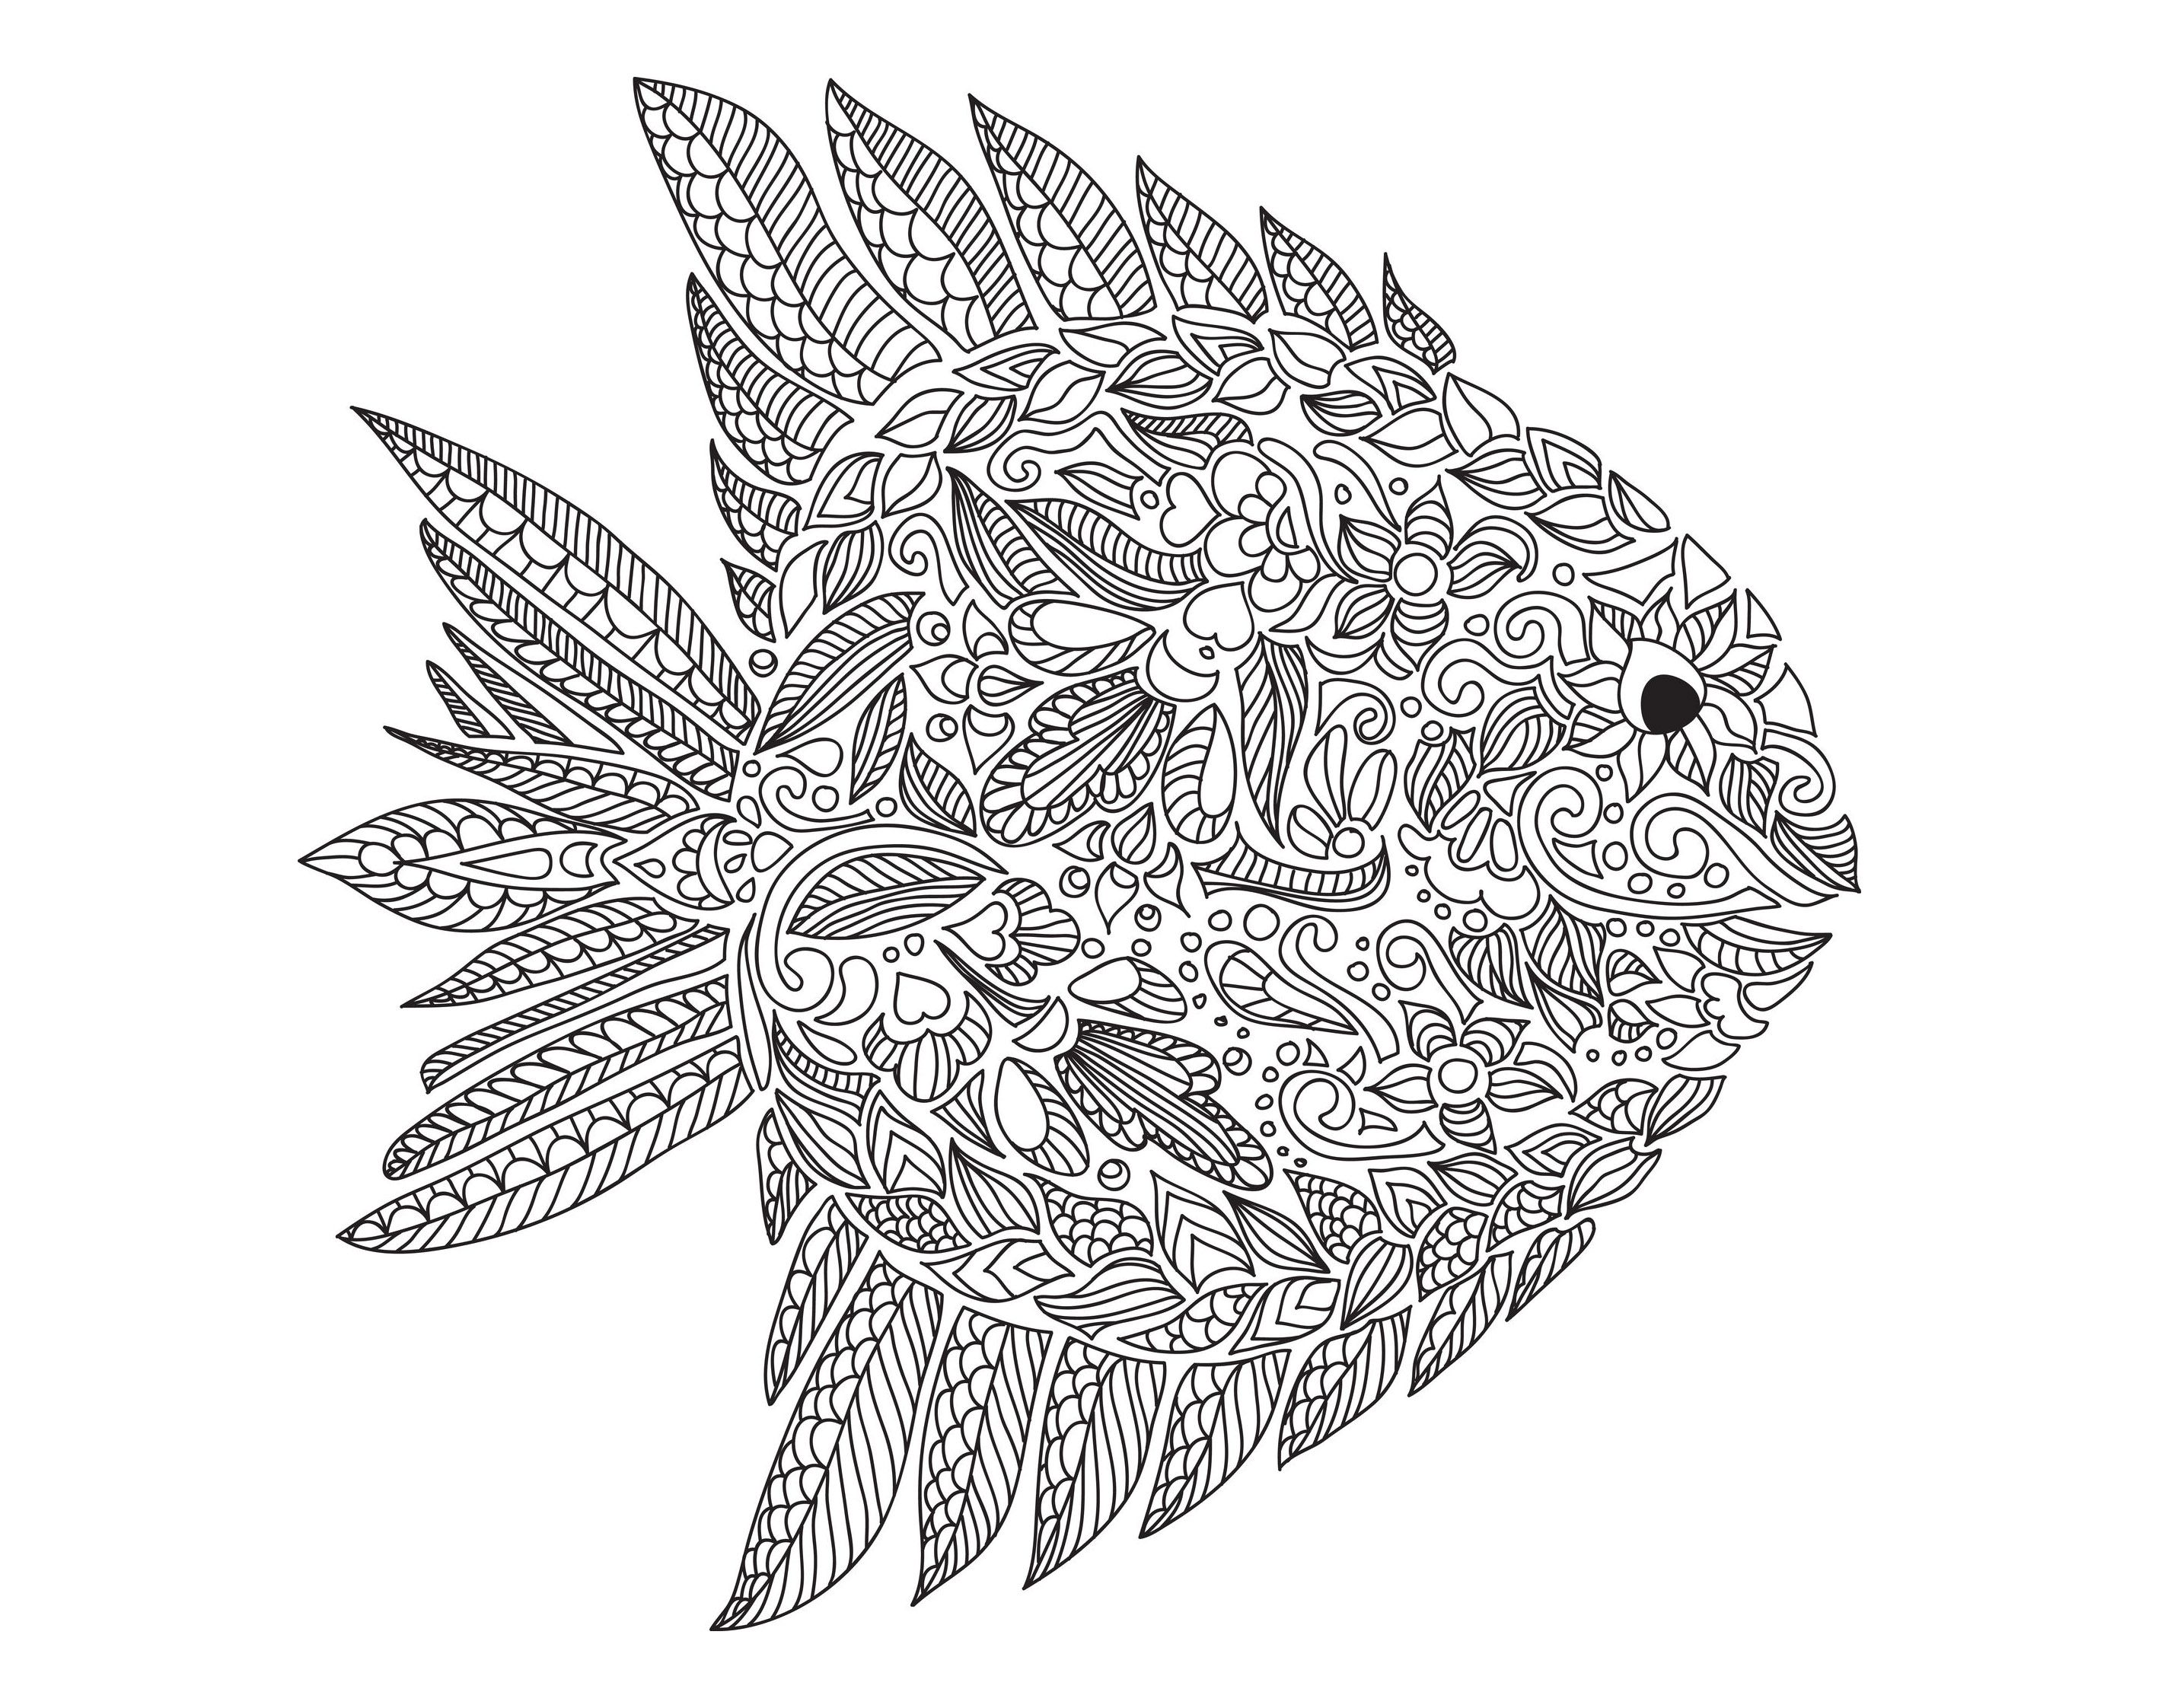 Printable coloring pages zentangle - Free Coloring Page Coloring Adult Zentangle Fish By Artnataliia Zentangle